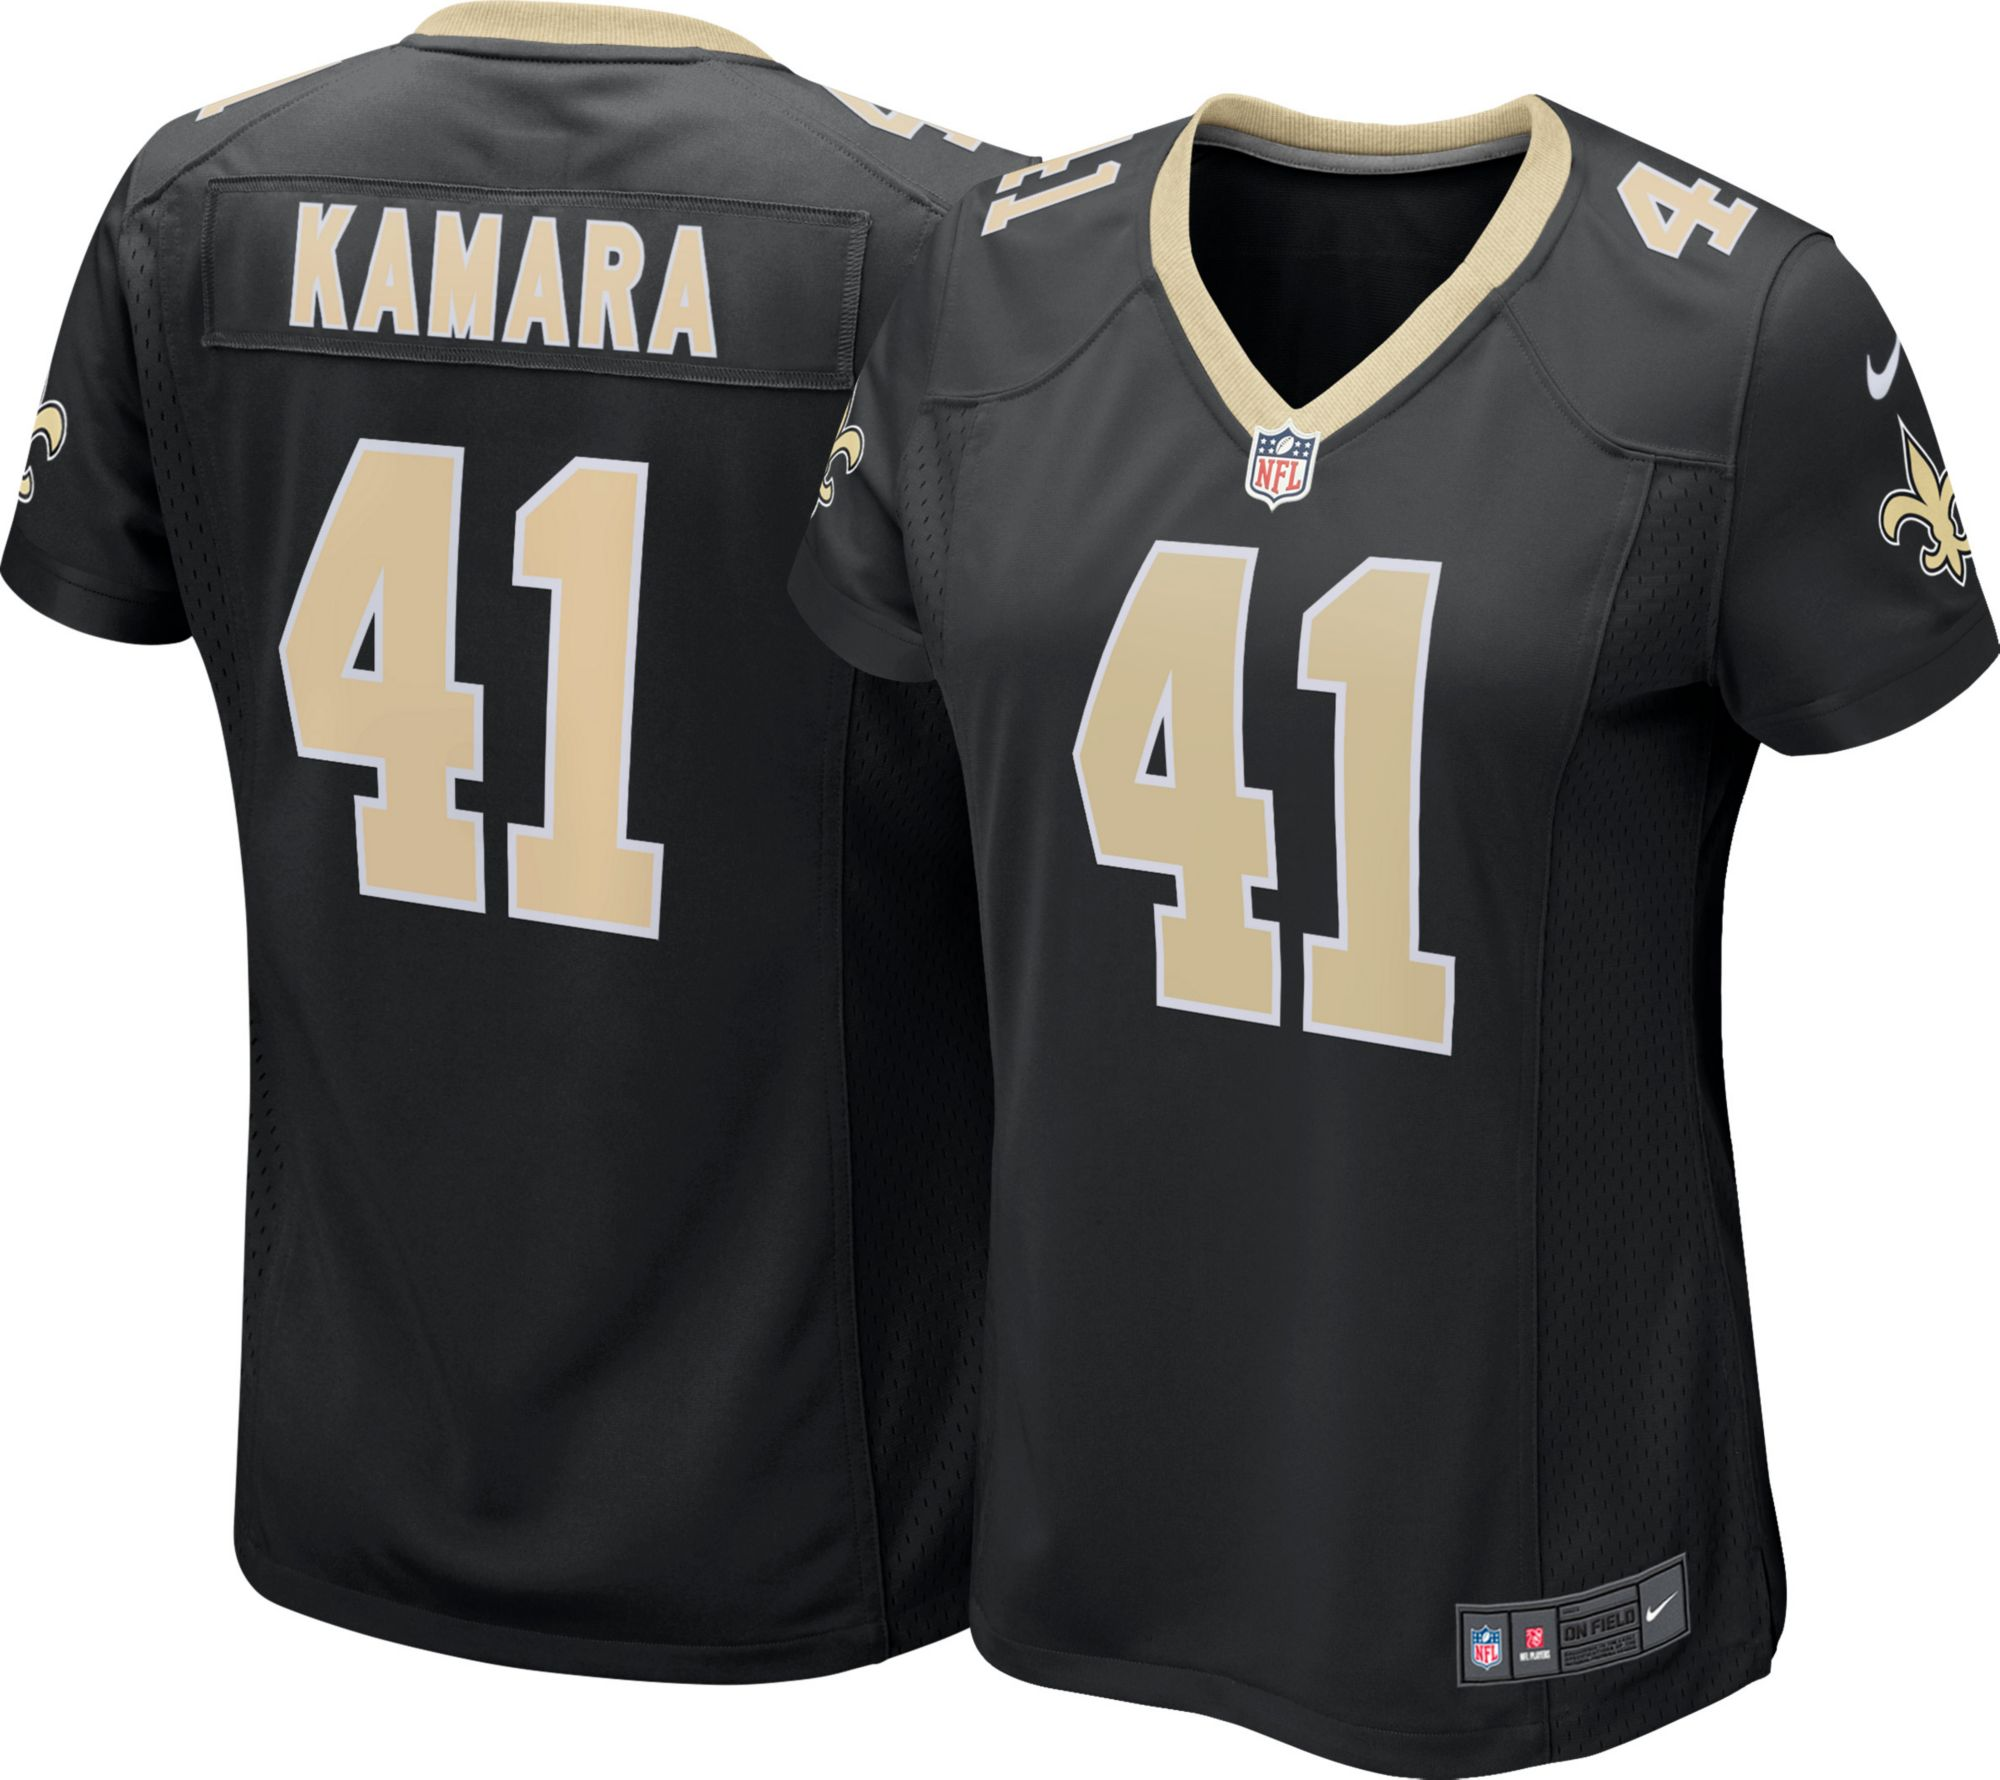 40603a1a1 Nike Women's Home Game Jersey New Orleans Saints Alvin Kamara #41 ...